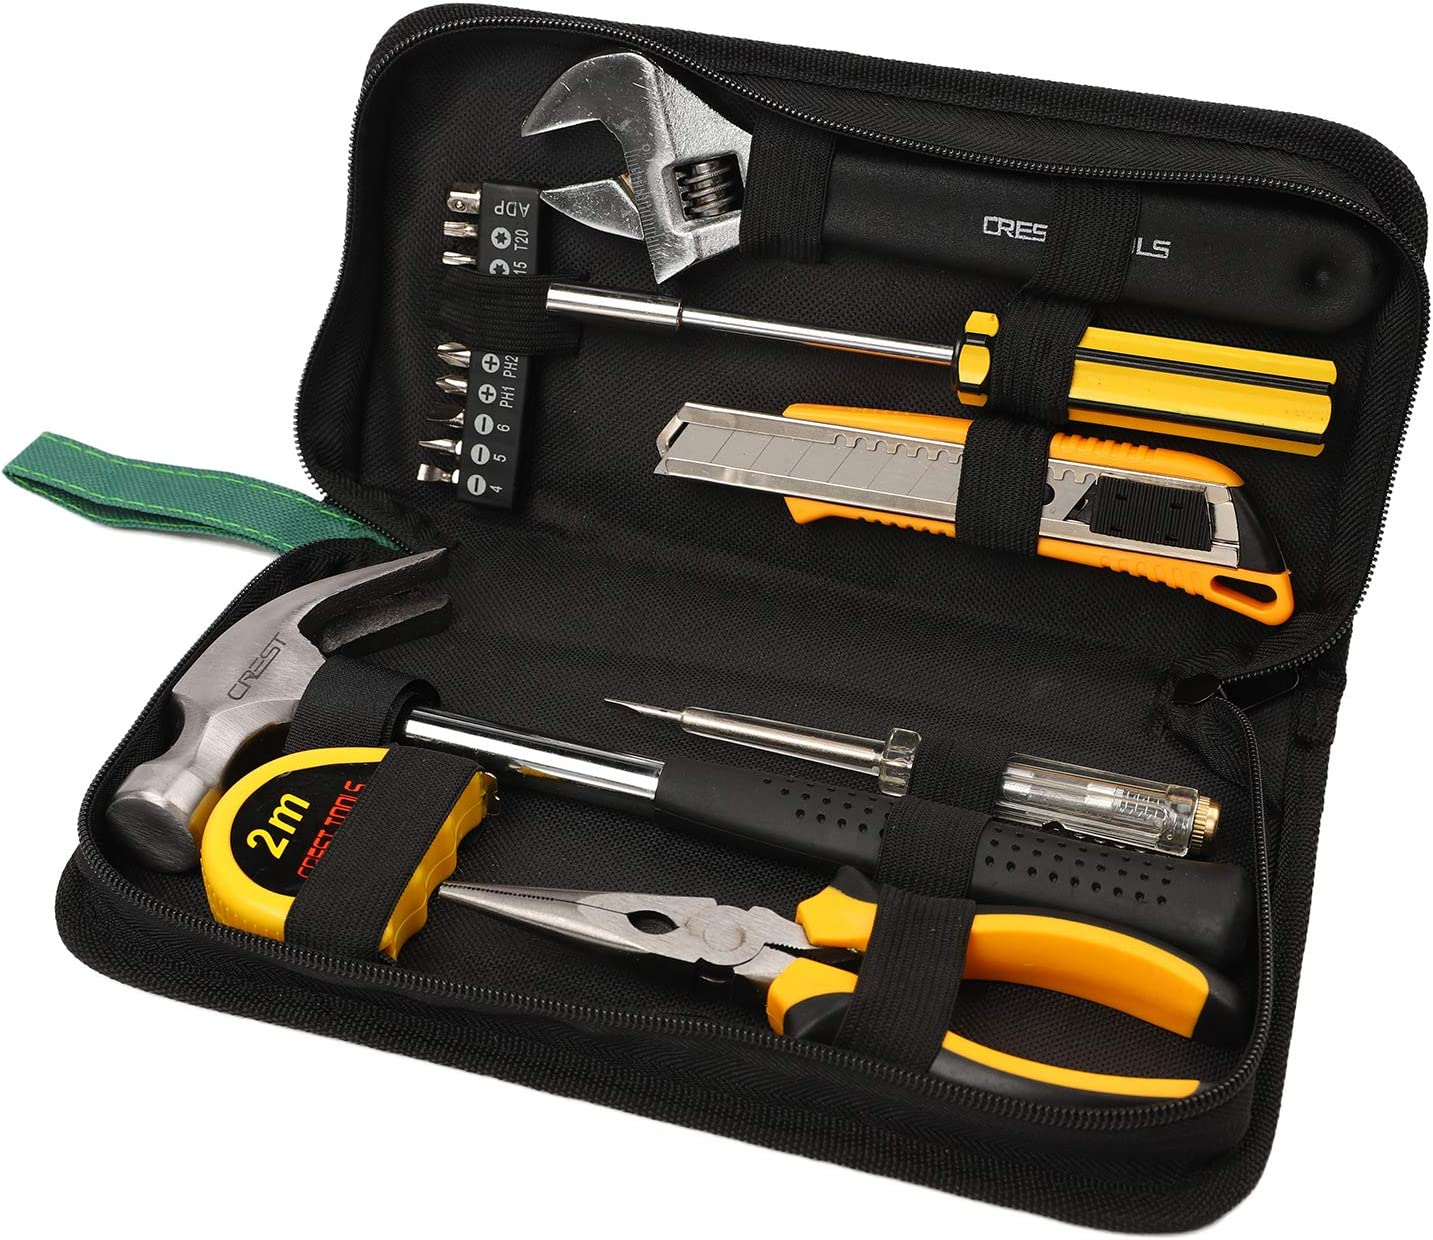 Amenvtool 18 Pcs Tool Set-Household tool with Easy Carrying Pouch - Durable Manual Multifunctional Tool Kit